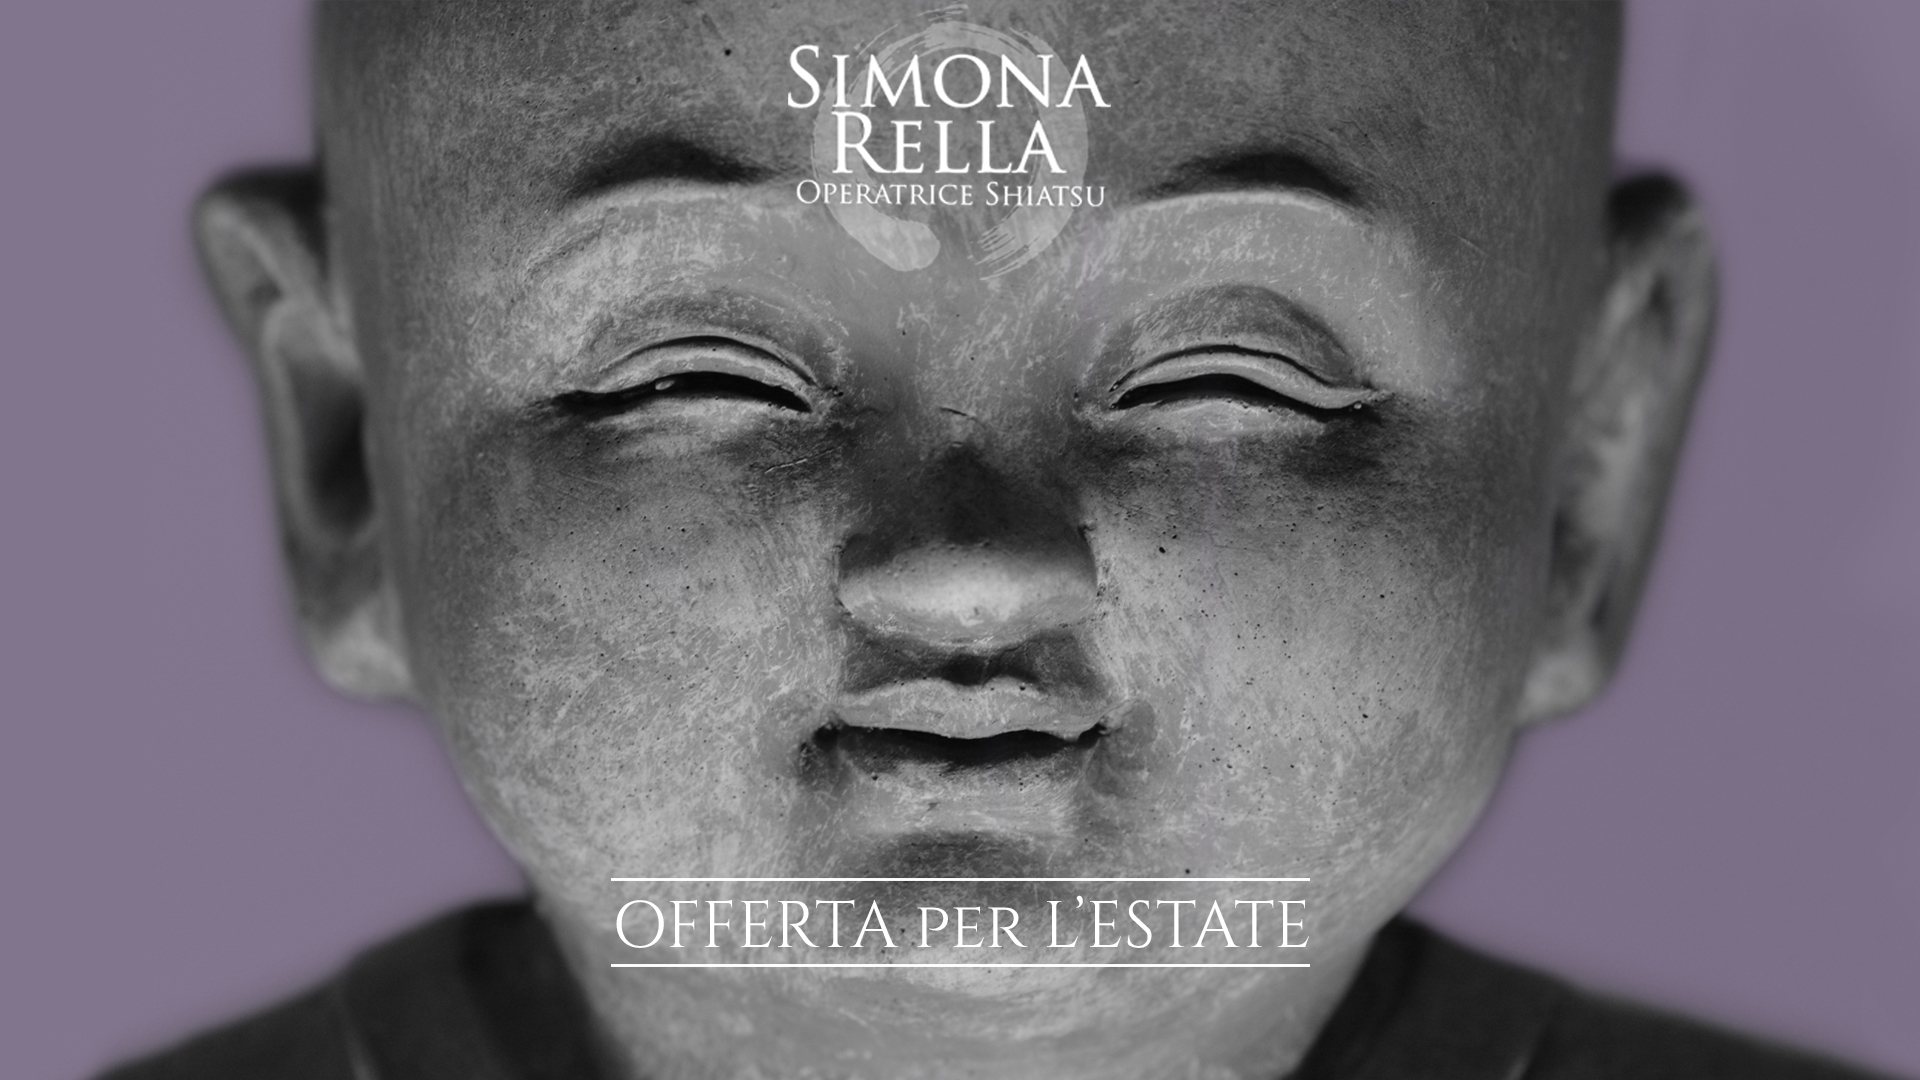 post_offerta2018__simonarella__shiatsu_3